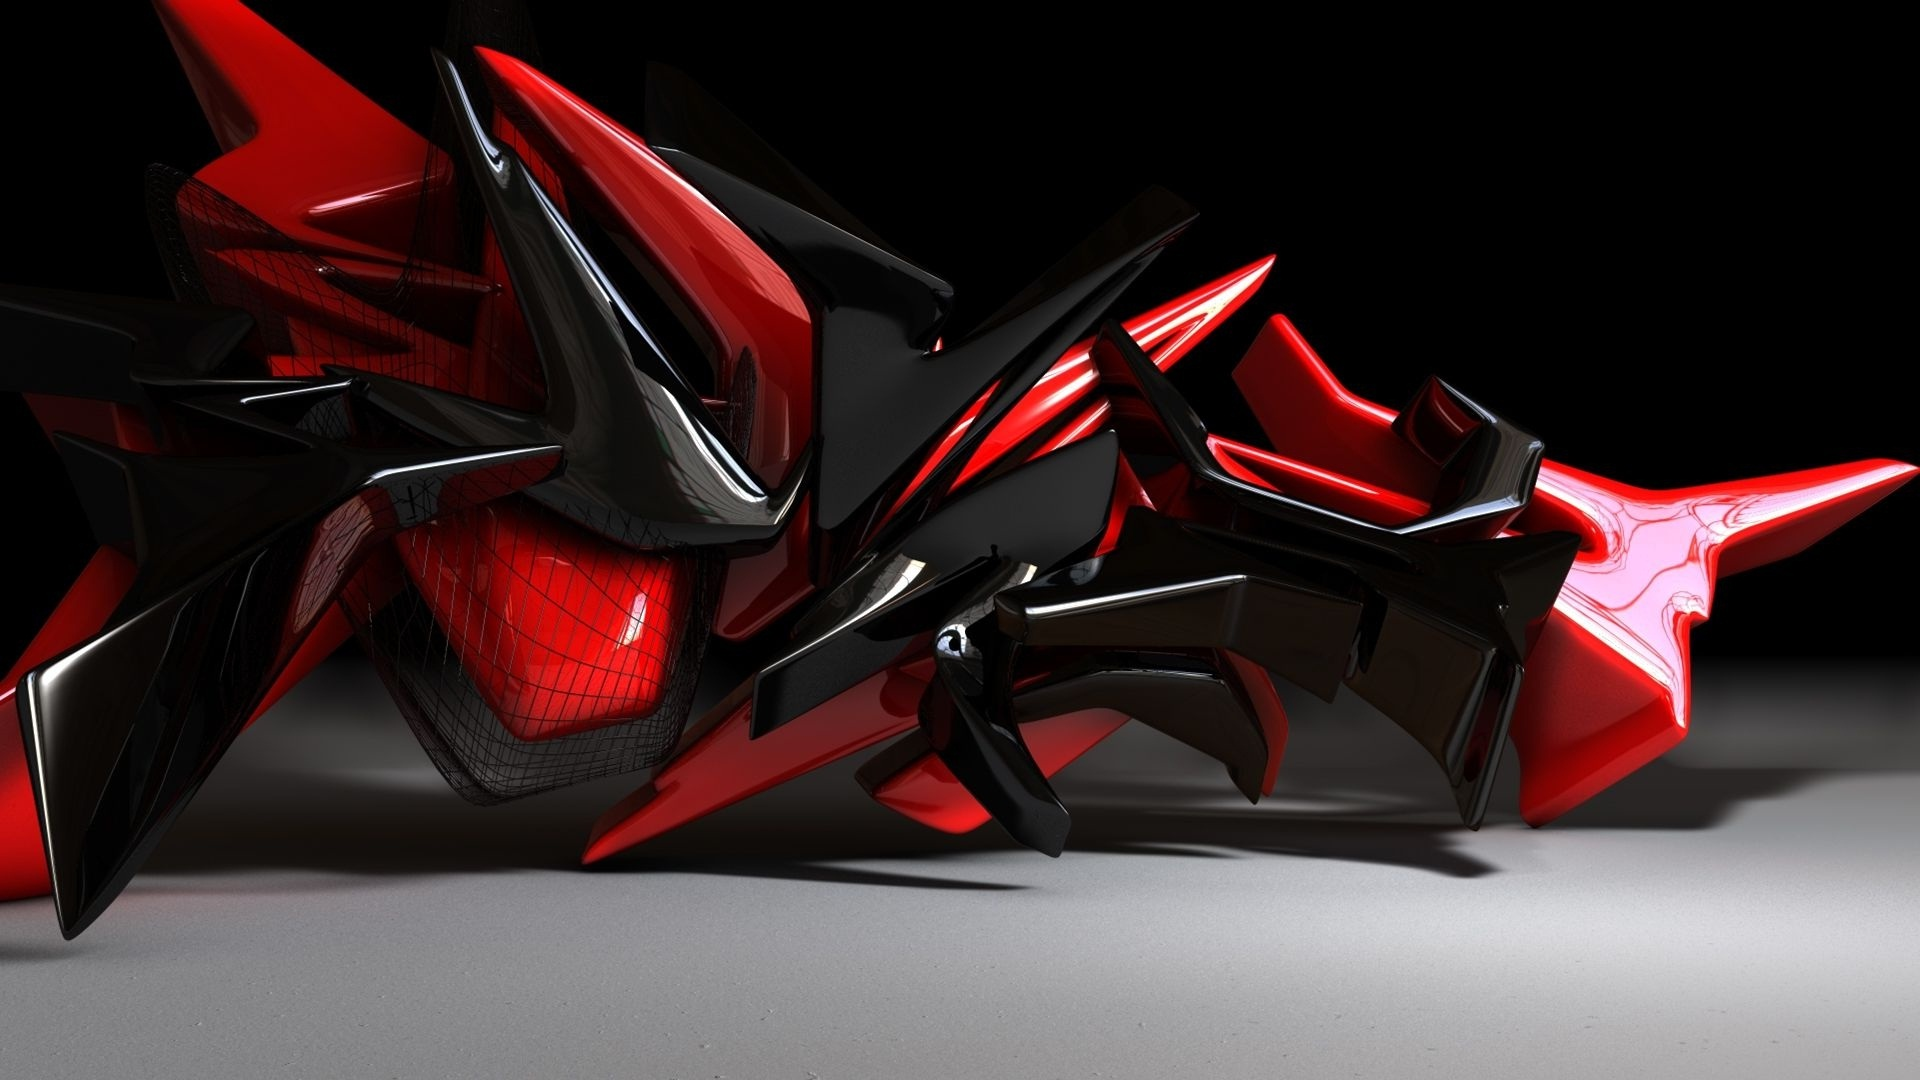 Red And Black Design 3D Cool Wallpapers 14548 Wallpaper 1920x1080